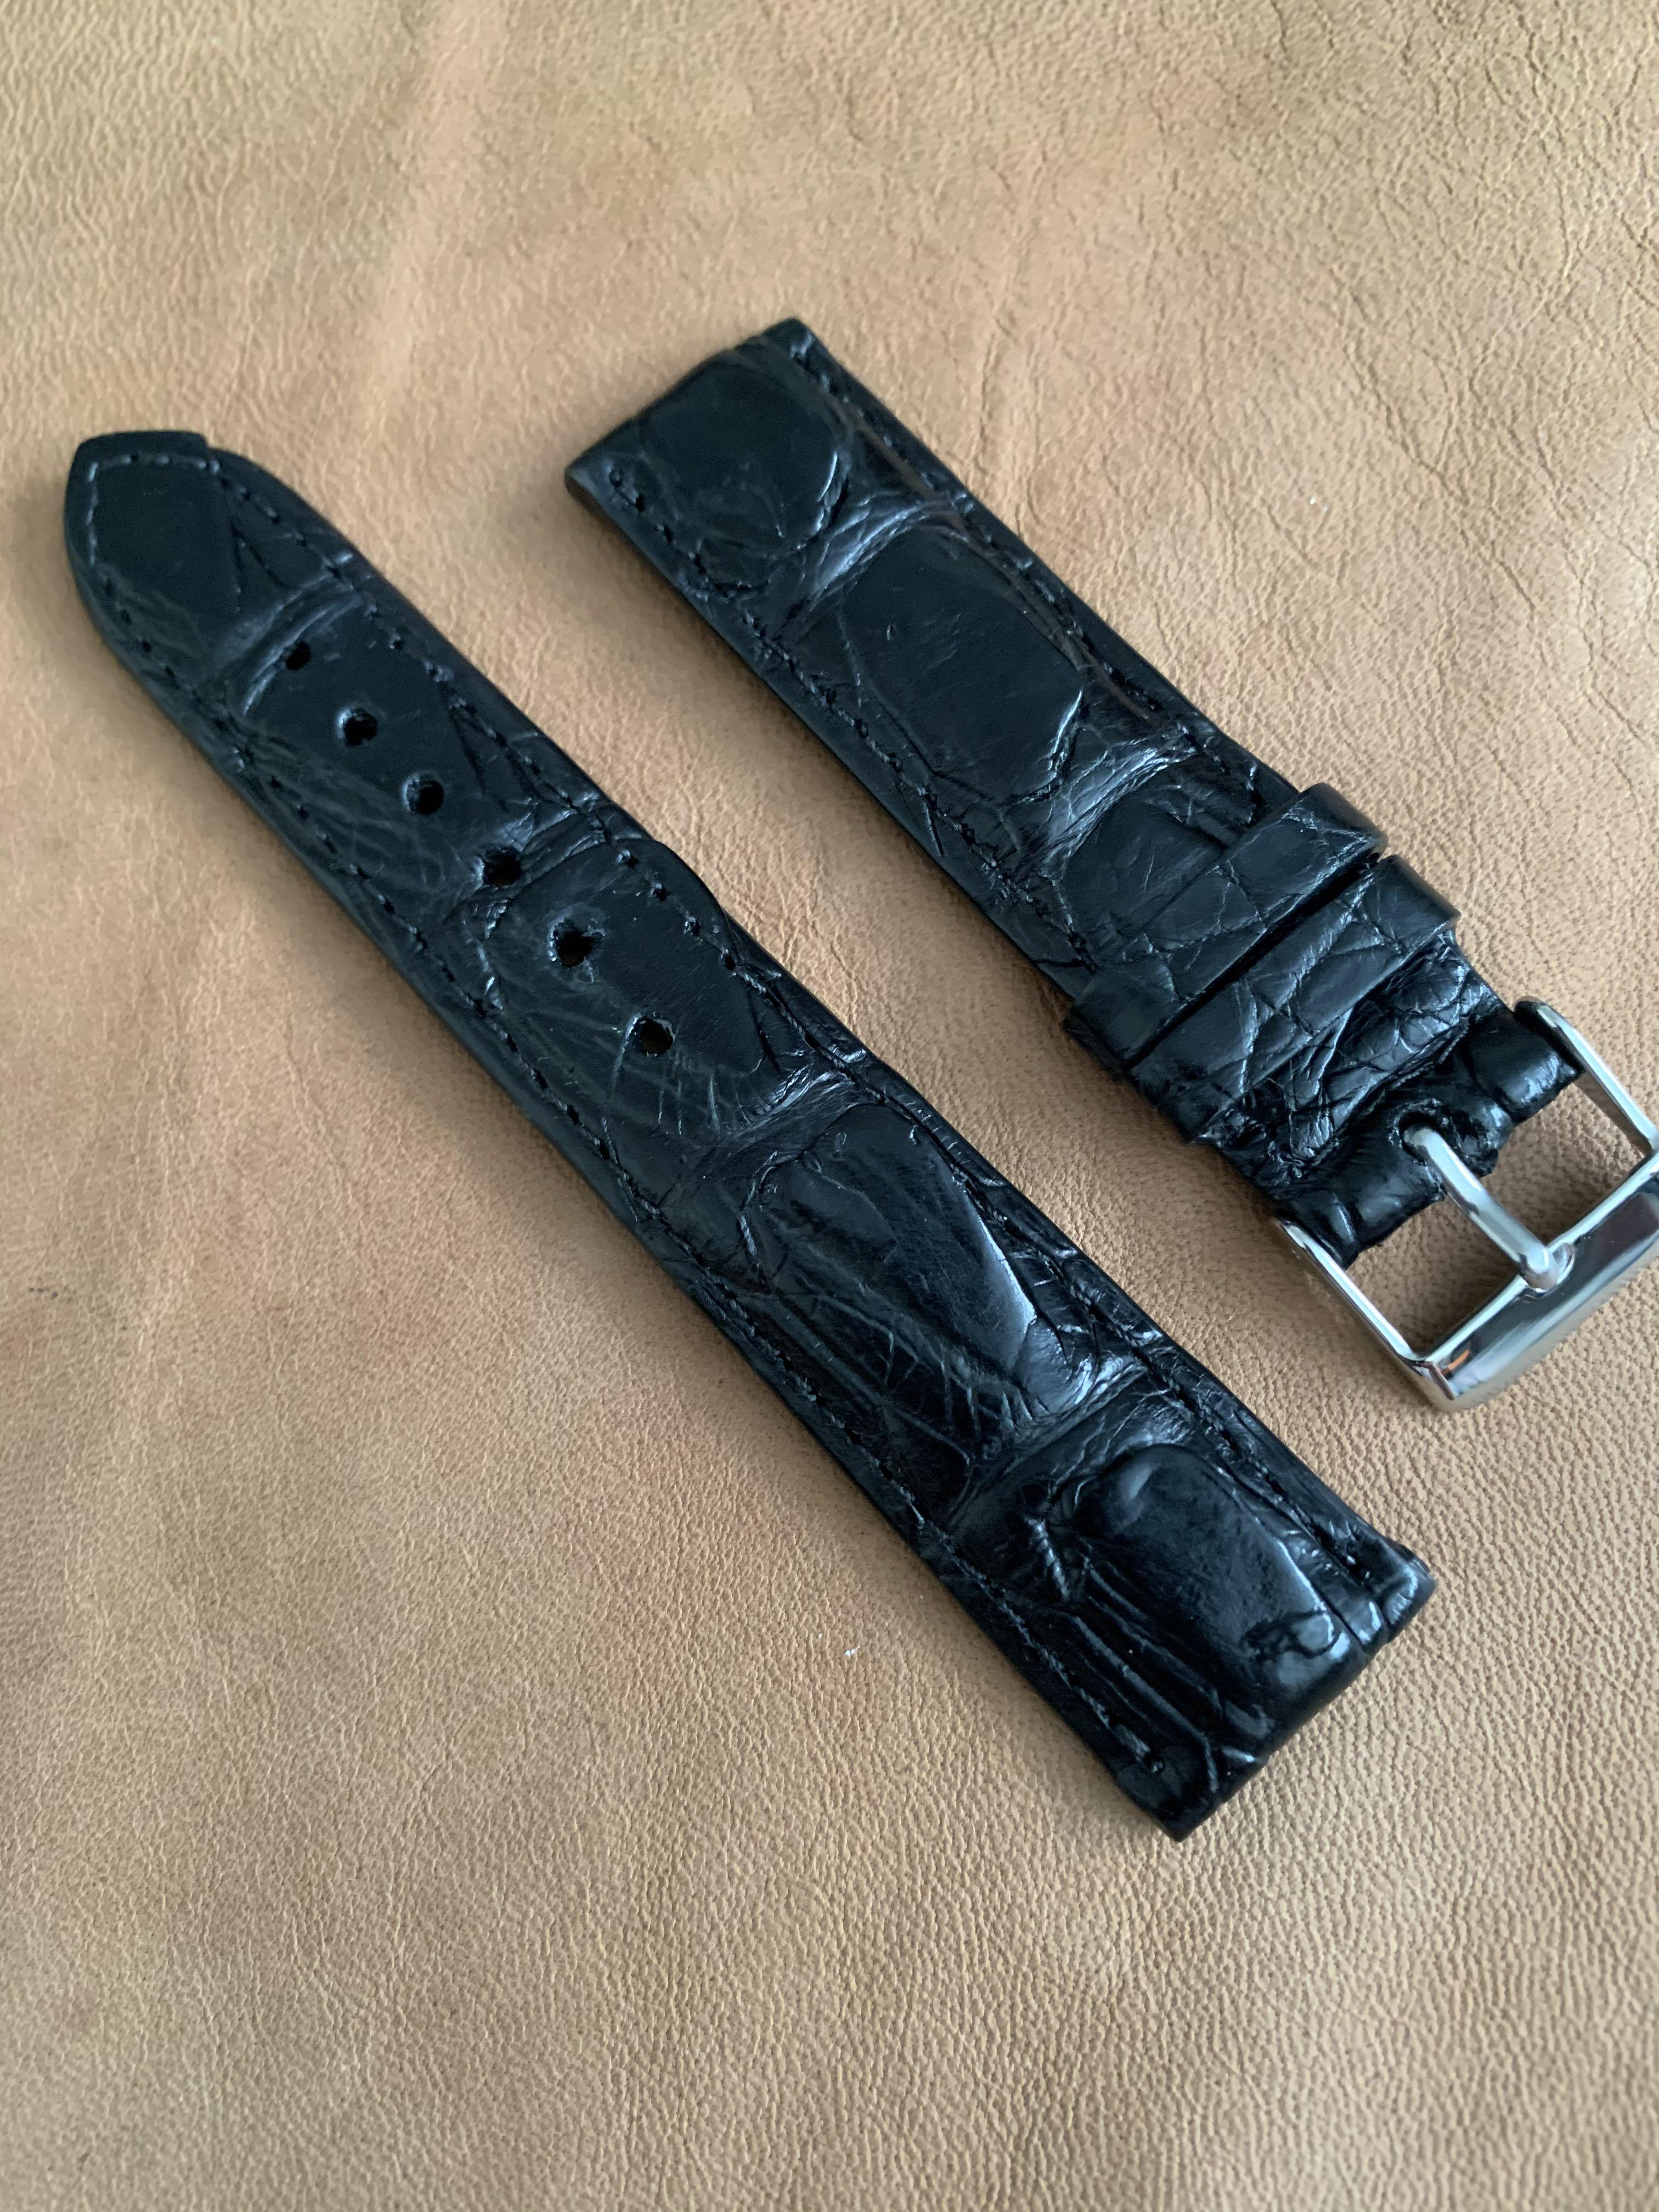 20mm/18mm Black Alligator Crocodile Watch Strap (rugged angled flaps and thick grains) (thick strap) 20mm@lug/18mm@buckle 20mm/18mm      Standard length: L-120mm,S-75mm